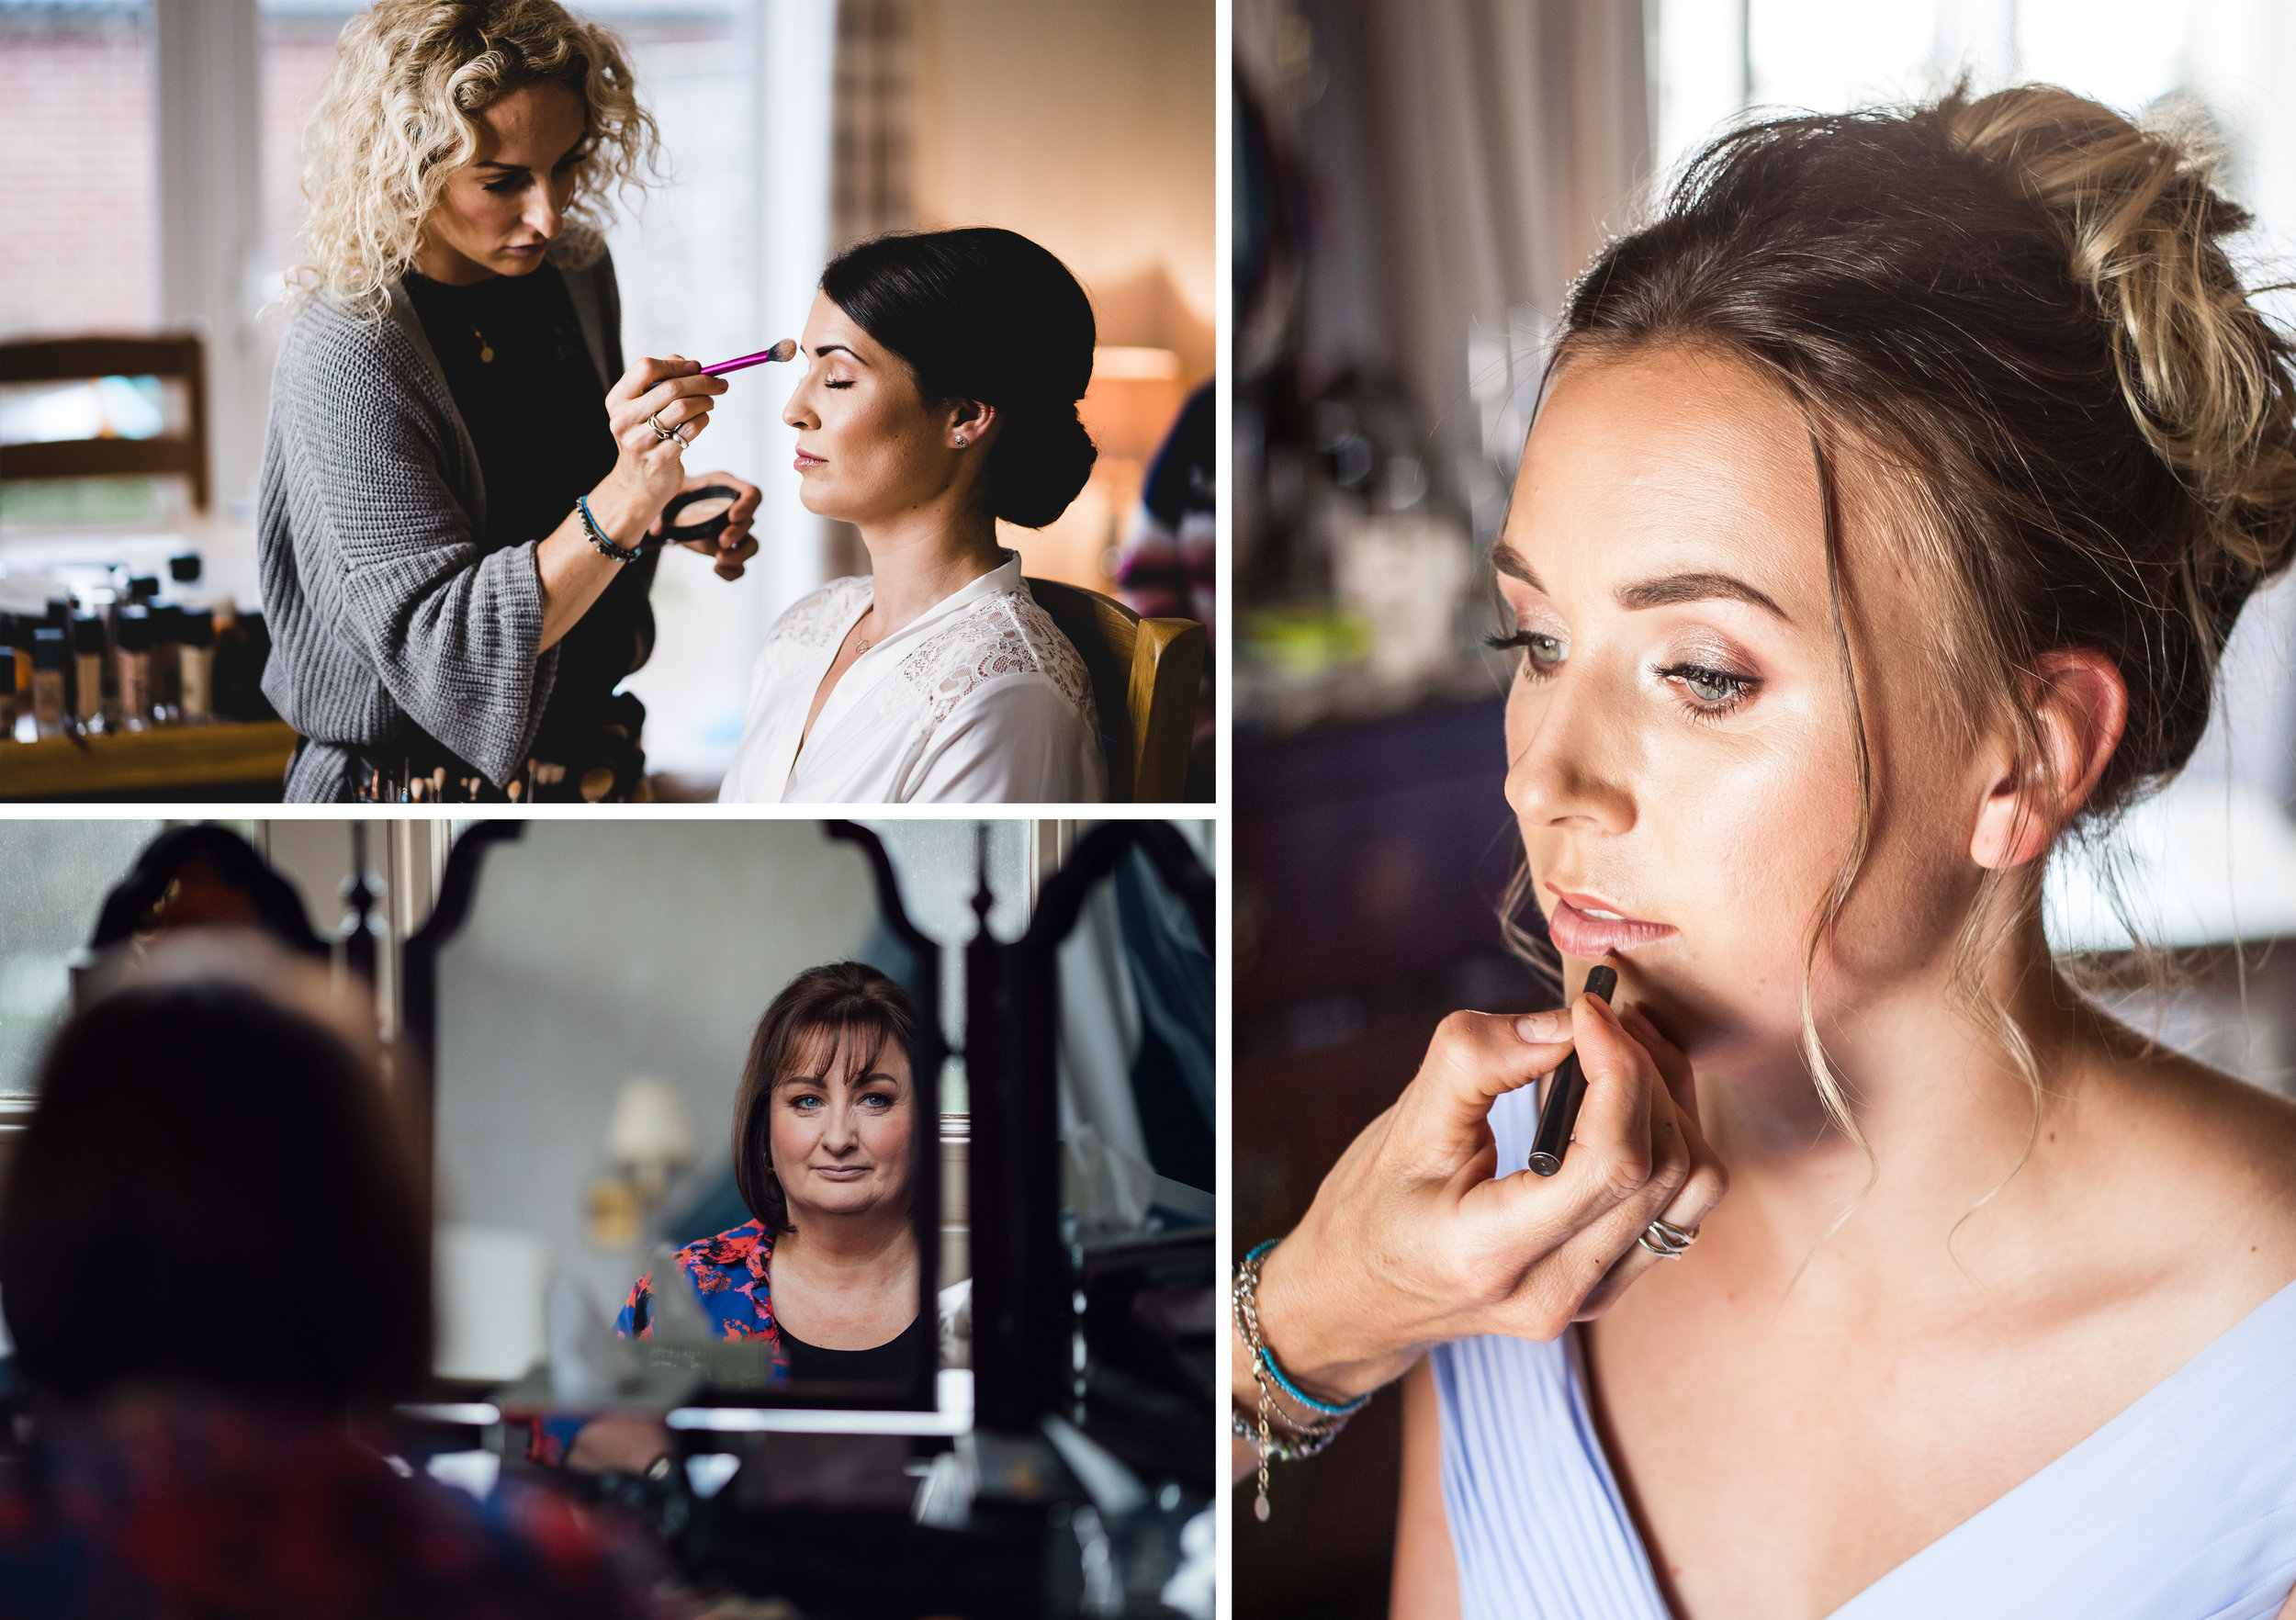 Professional Makeup - from £50If you'd like your makeup done professionally, award-winning Sally from sallysmakeup.co.uk is here to provide you with a relaxing pamper and confidence boost before your shoot. Sally's style is very natural, focusing on accentuating your natural beauty and helping you to feel completely relaxed during your shoot.Please note that Sally is only available on weekdays.